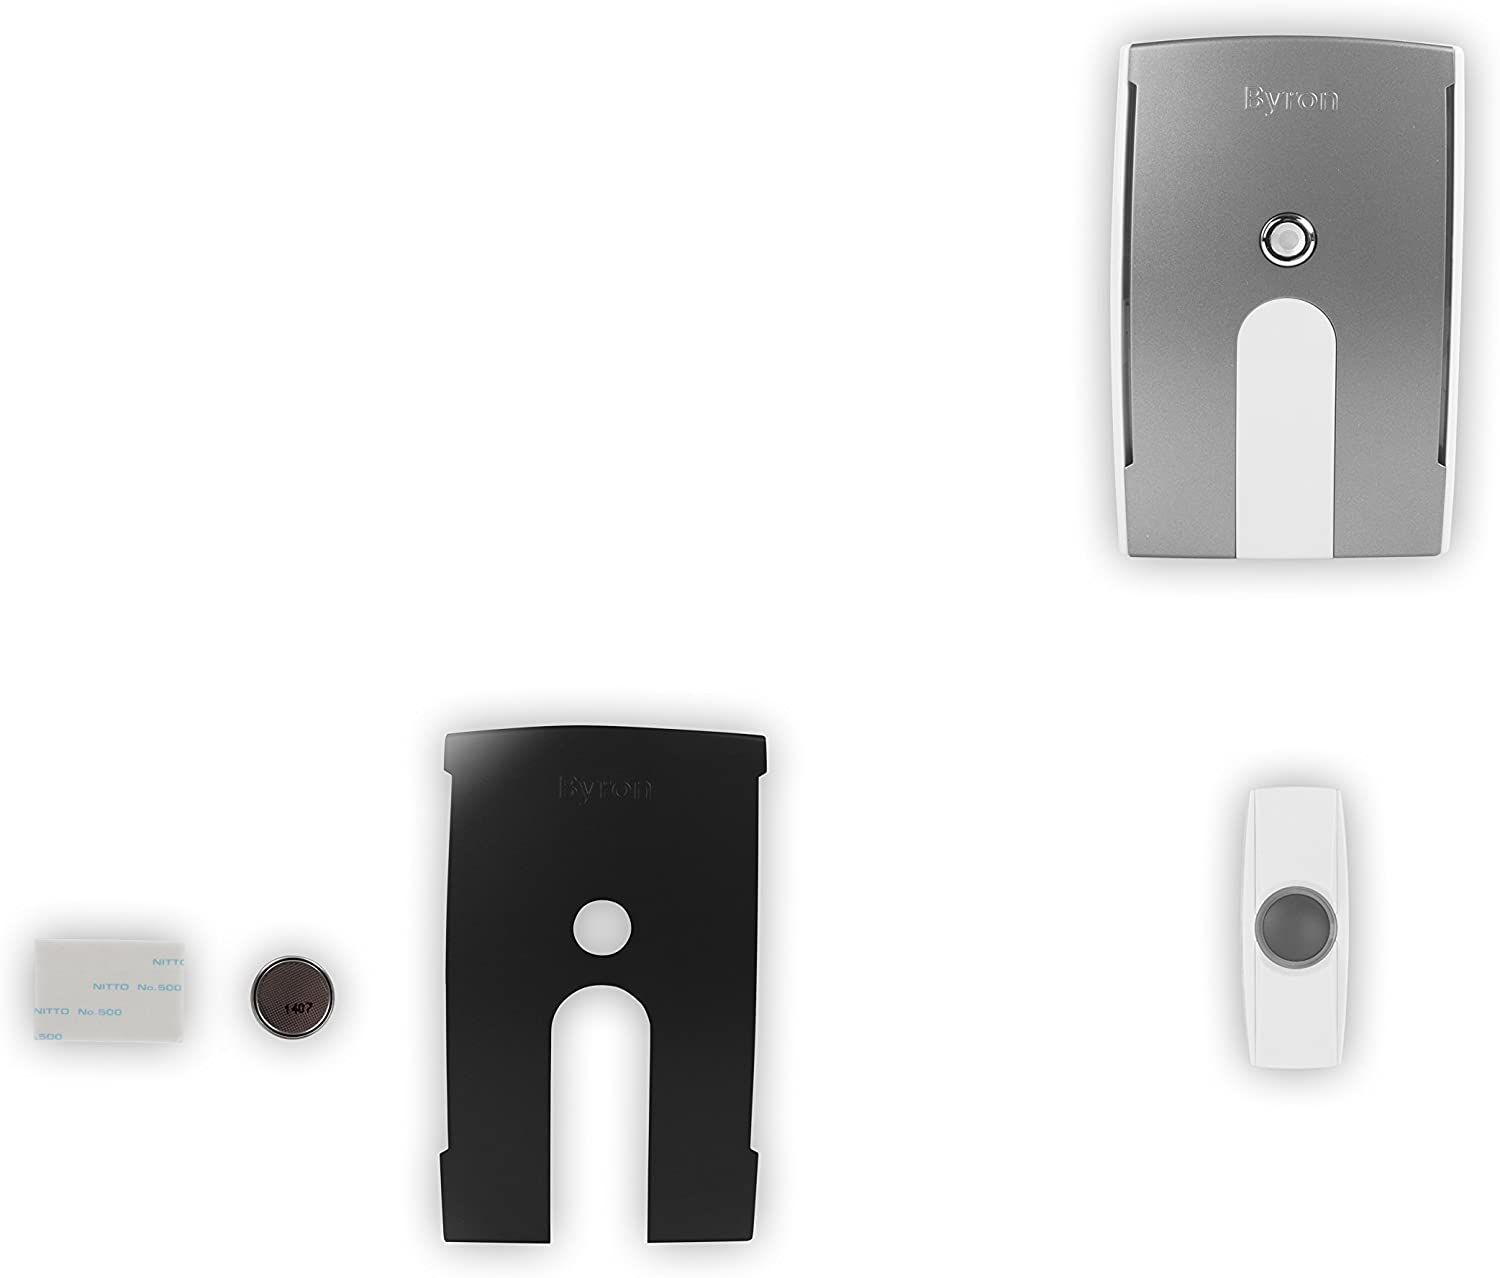 Byron BY504 125m Wireless Doorbell with Portable Flashing Chime